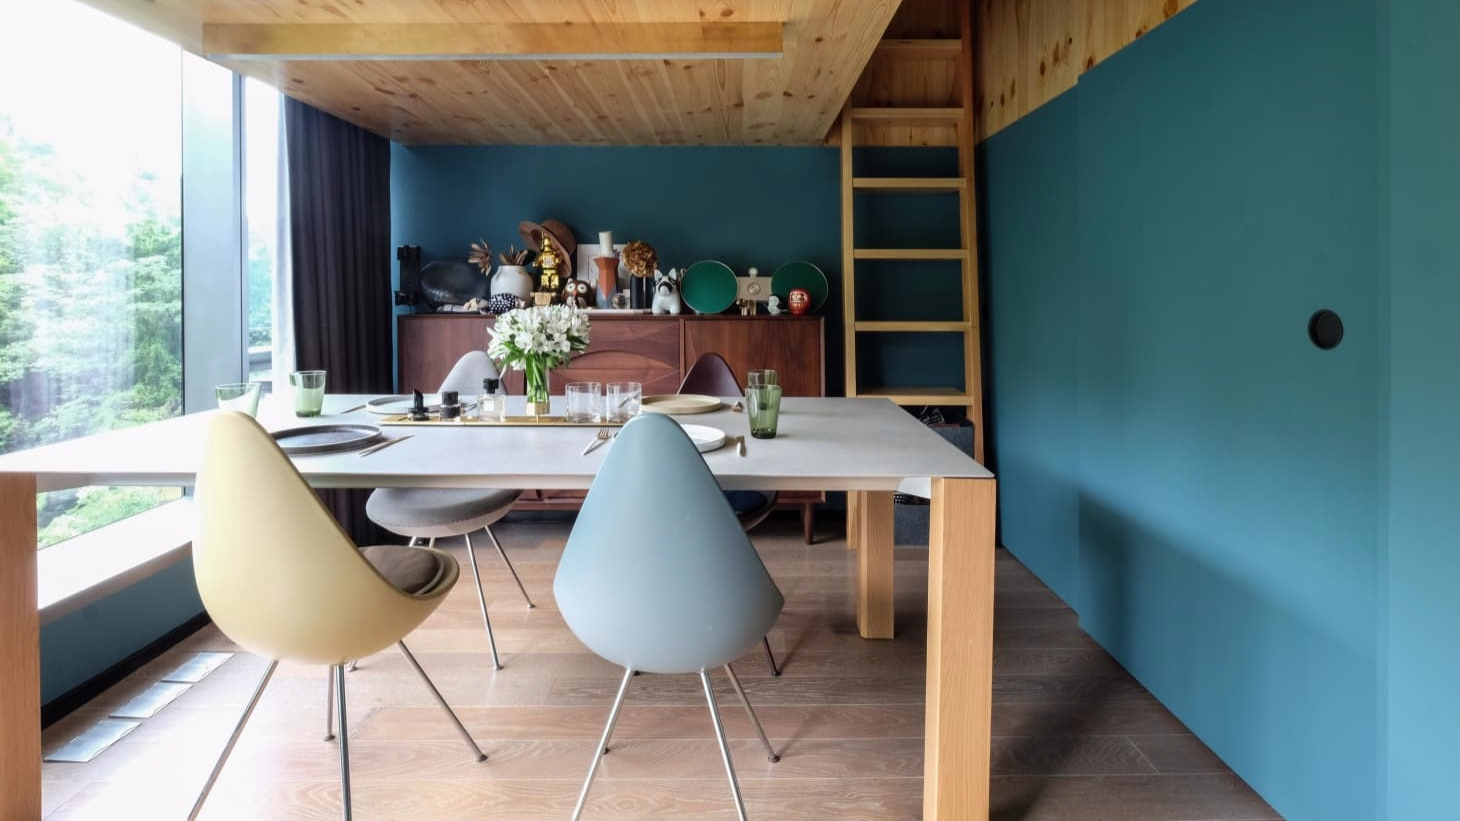 Apartment Therapy - How to Decorate Your Dining Room Table